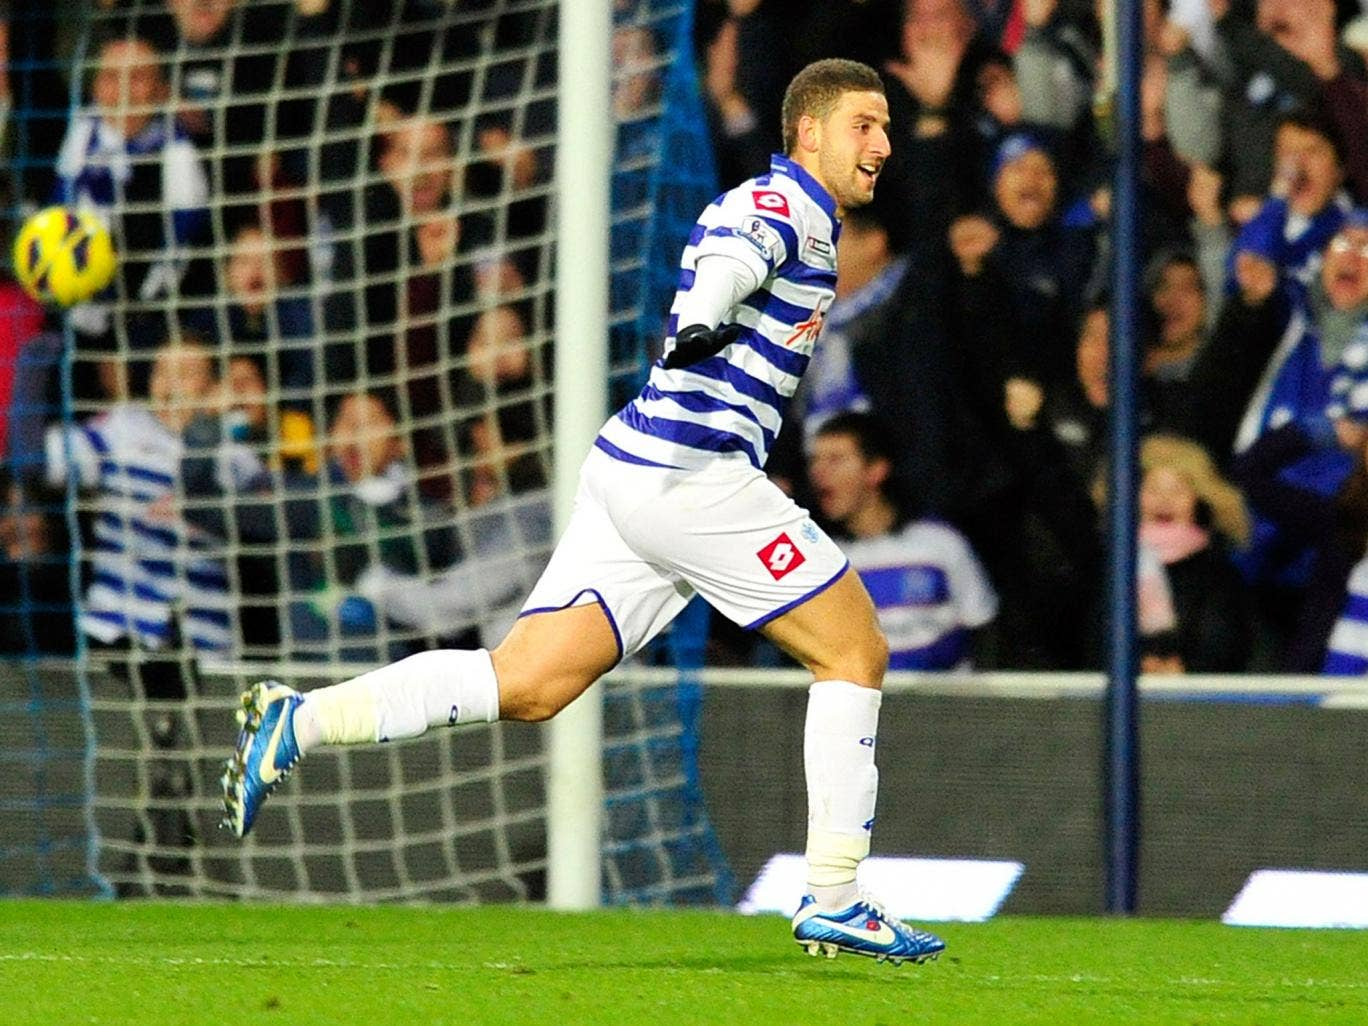 Adel Taarabt sets Queens Park Rangers on their way to victory